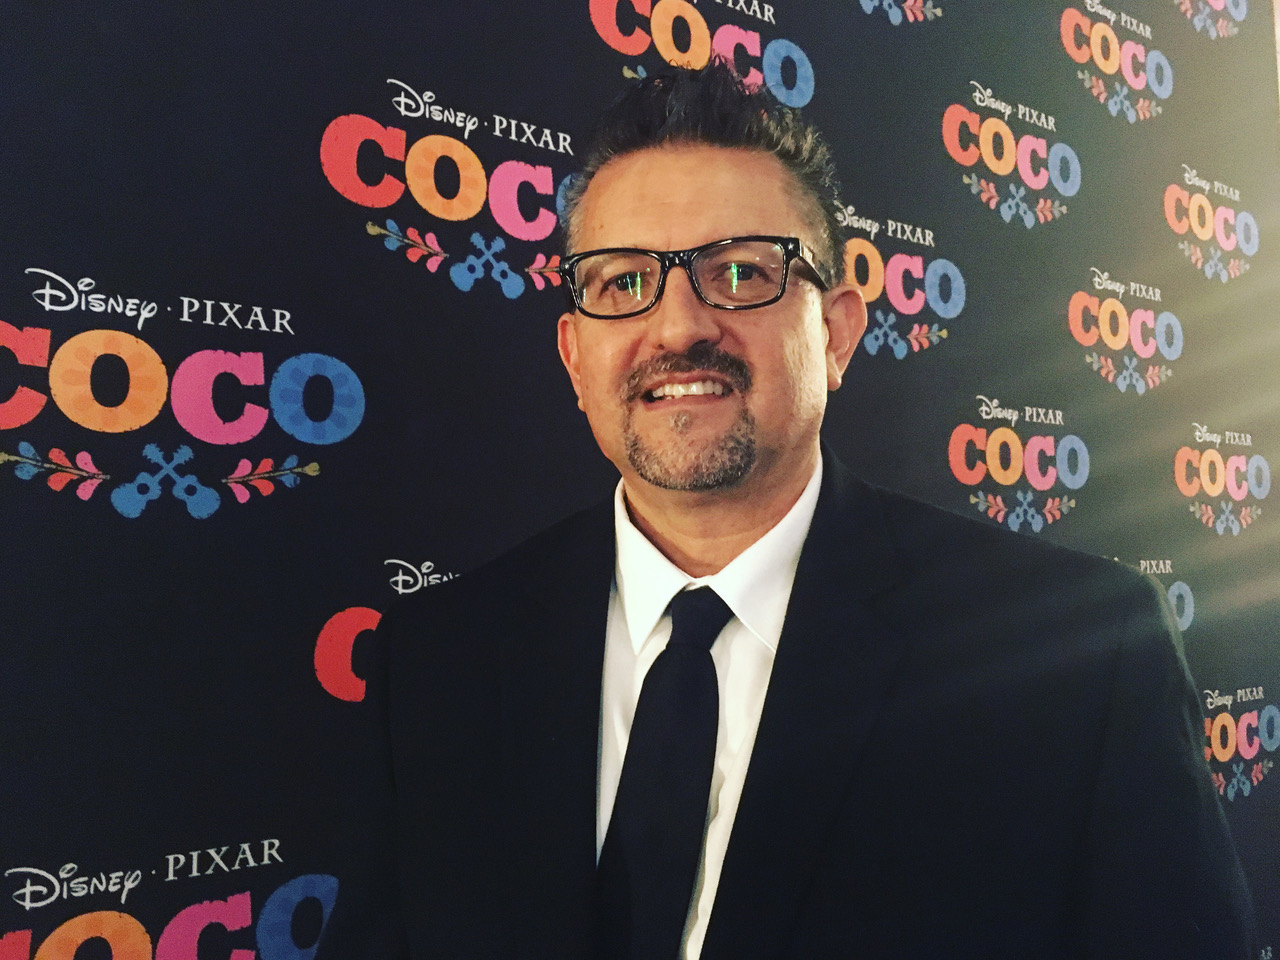 SDSU Alumni Win Big at Academy Awards with 'Coco'